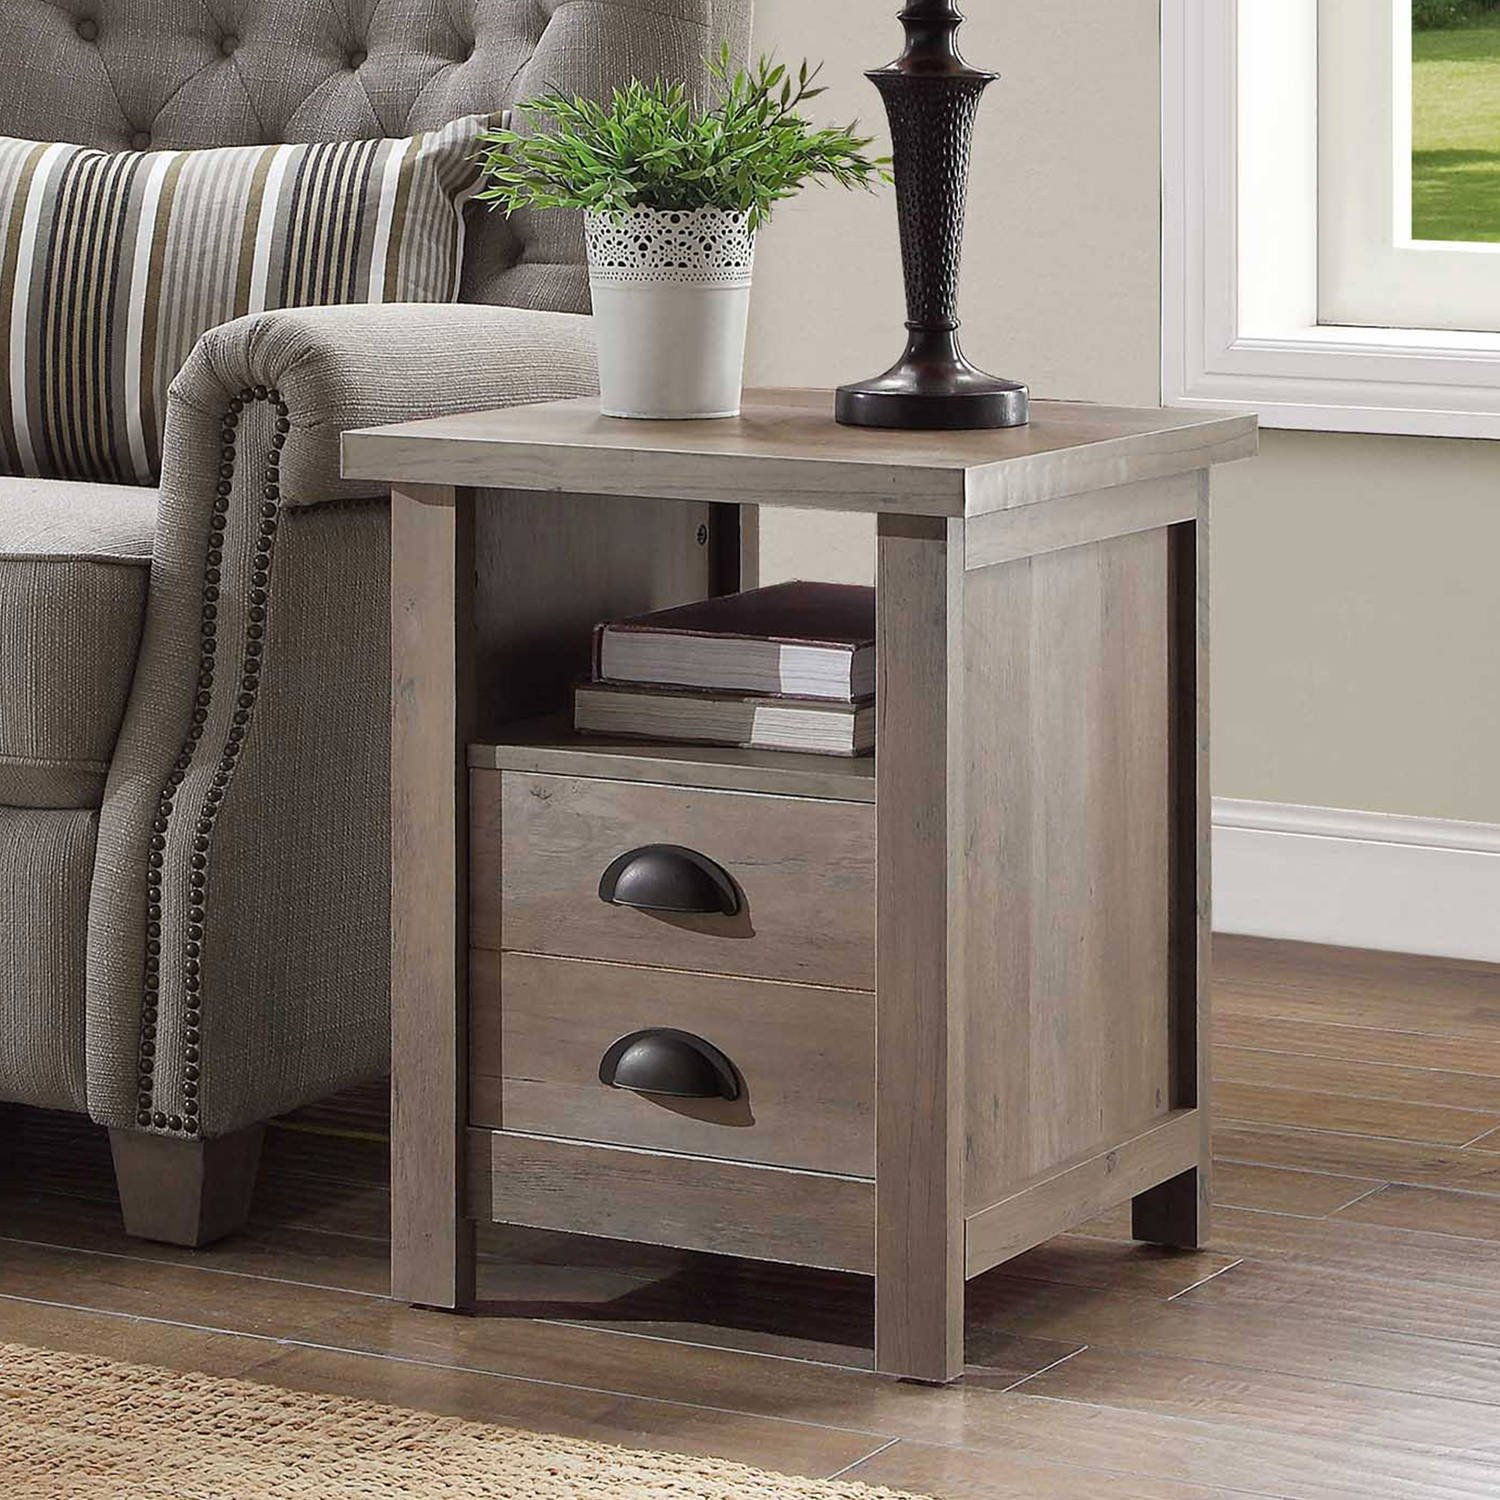 Simple Yet Stylish Sturdy End Table 1, Rustic Gray